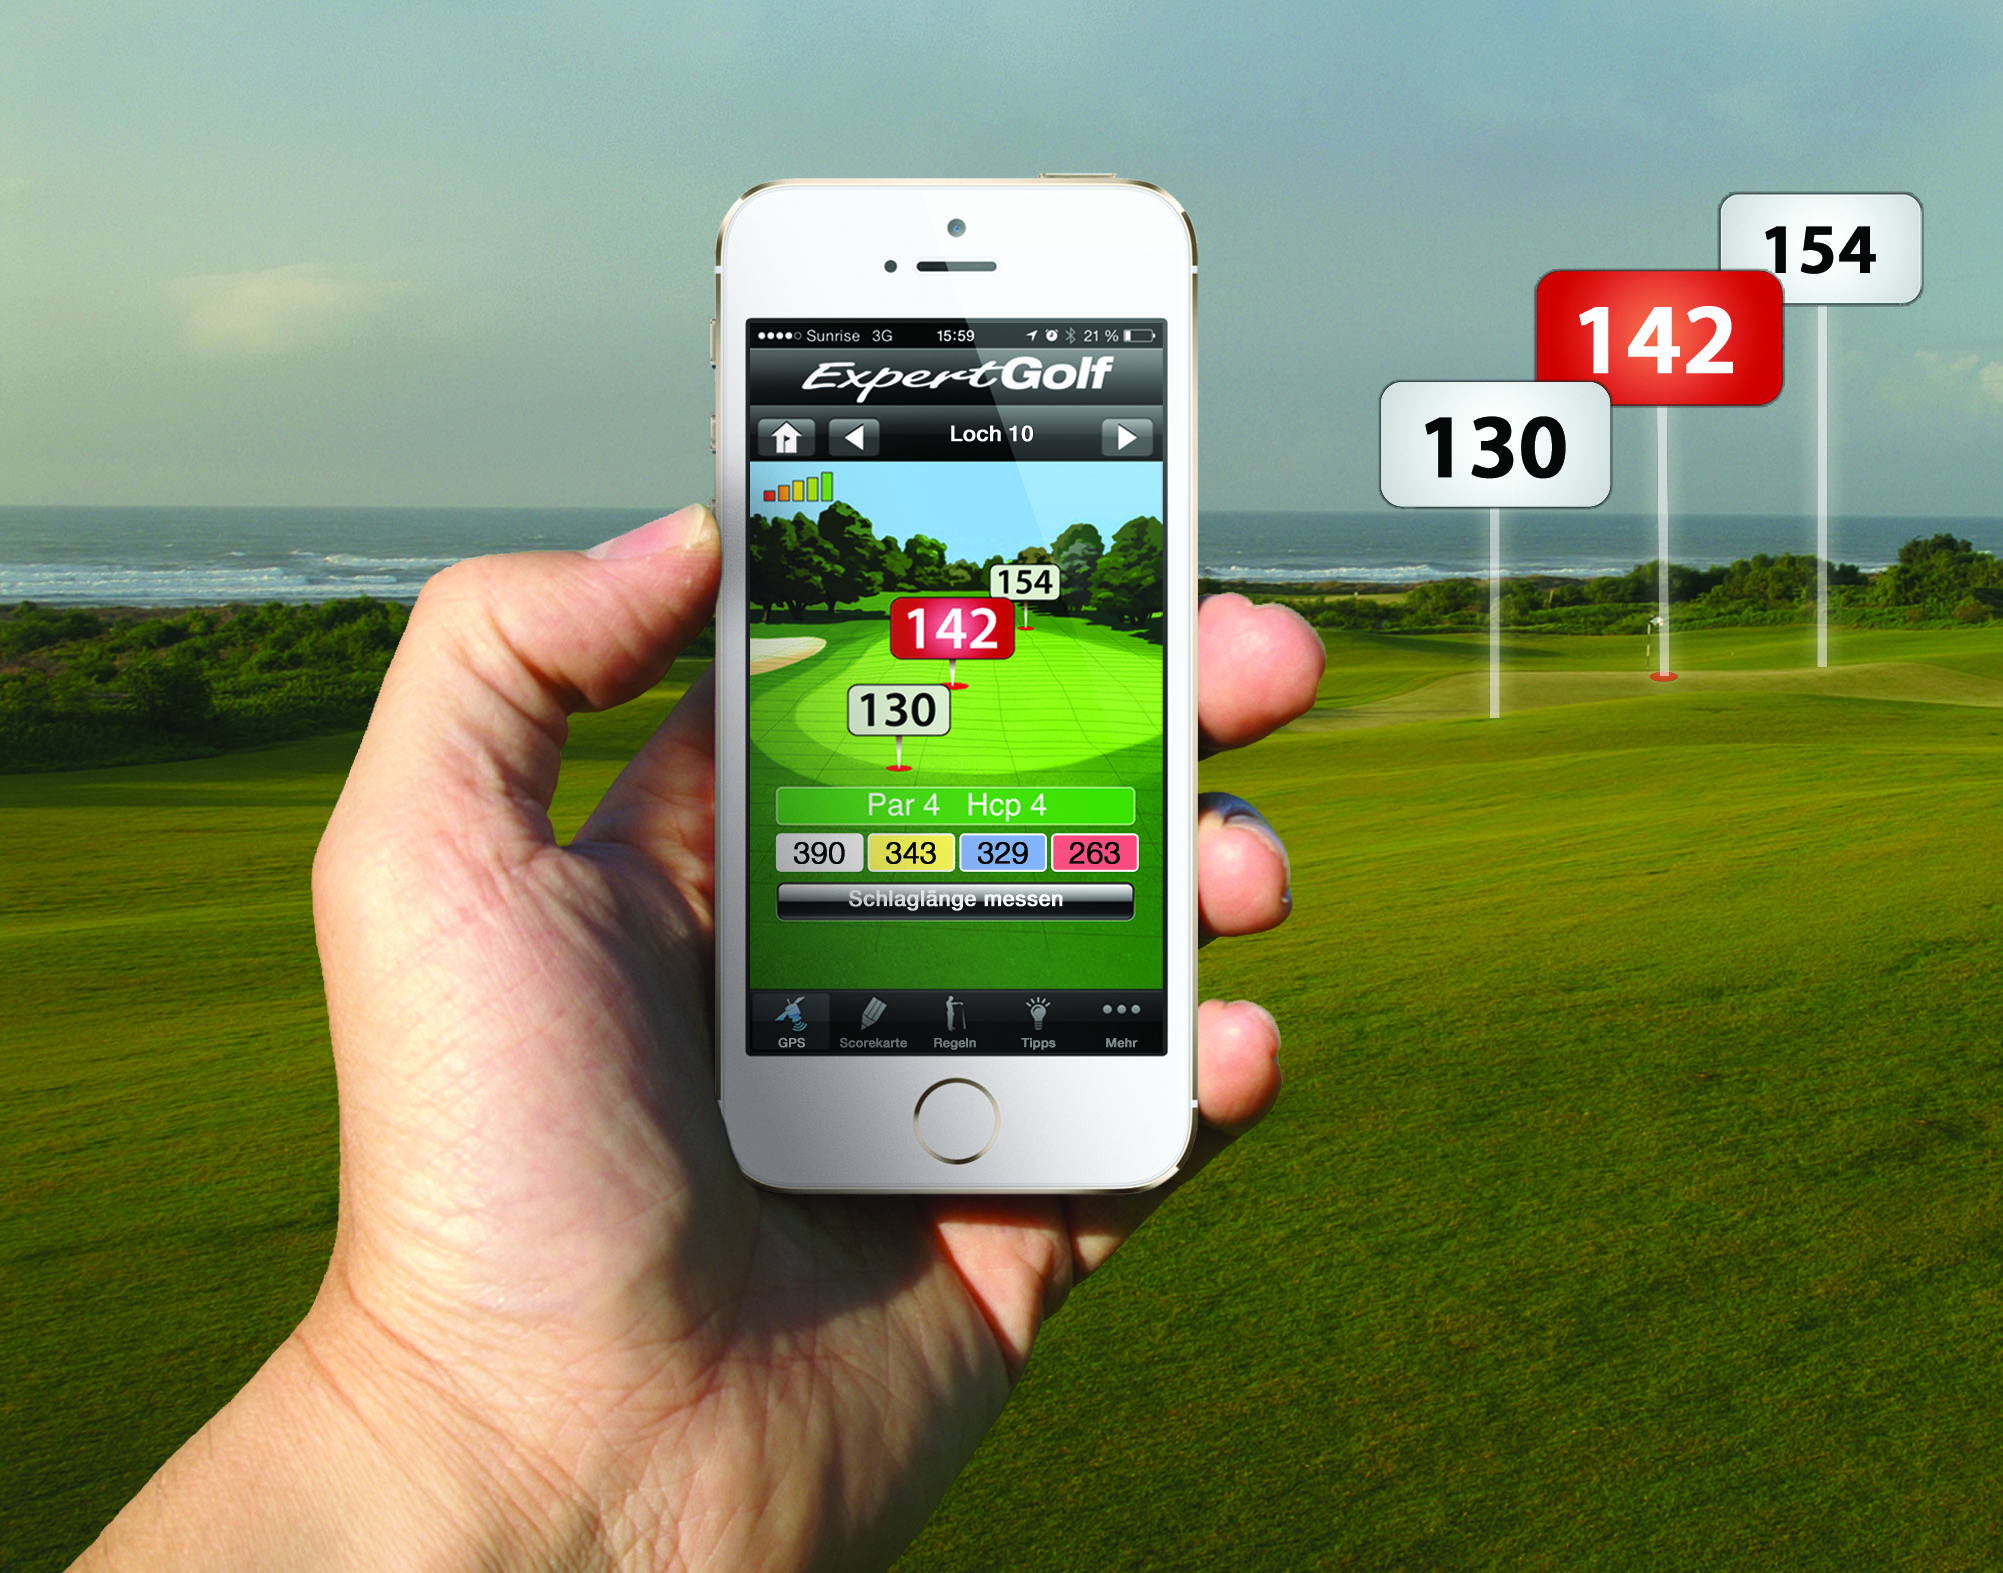 Iphone App Golf Entfernungsmesser : Golfshot plus golf gps im app store